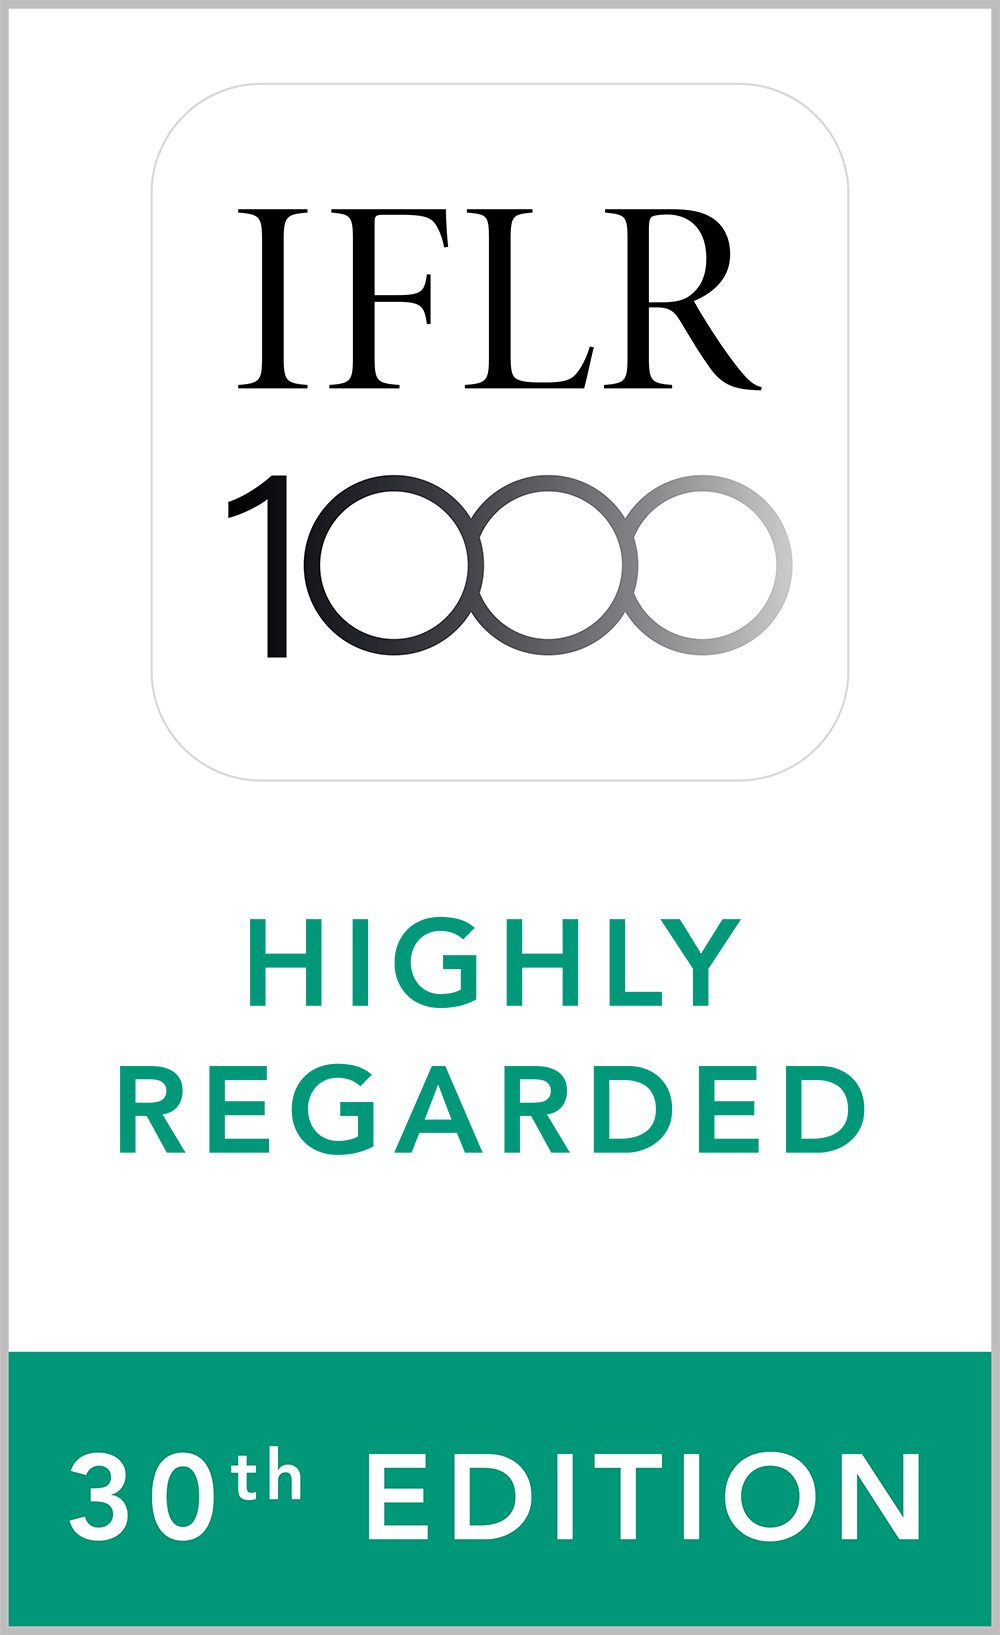 Recognised as Highly Regarded Leading Lawyer in Capital markets: Equity, M&A, Private equity, Restructuring and insolvency by IFLR1000, LC Lawyers LLP, Rossana Chu, 2021